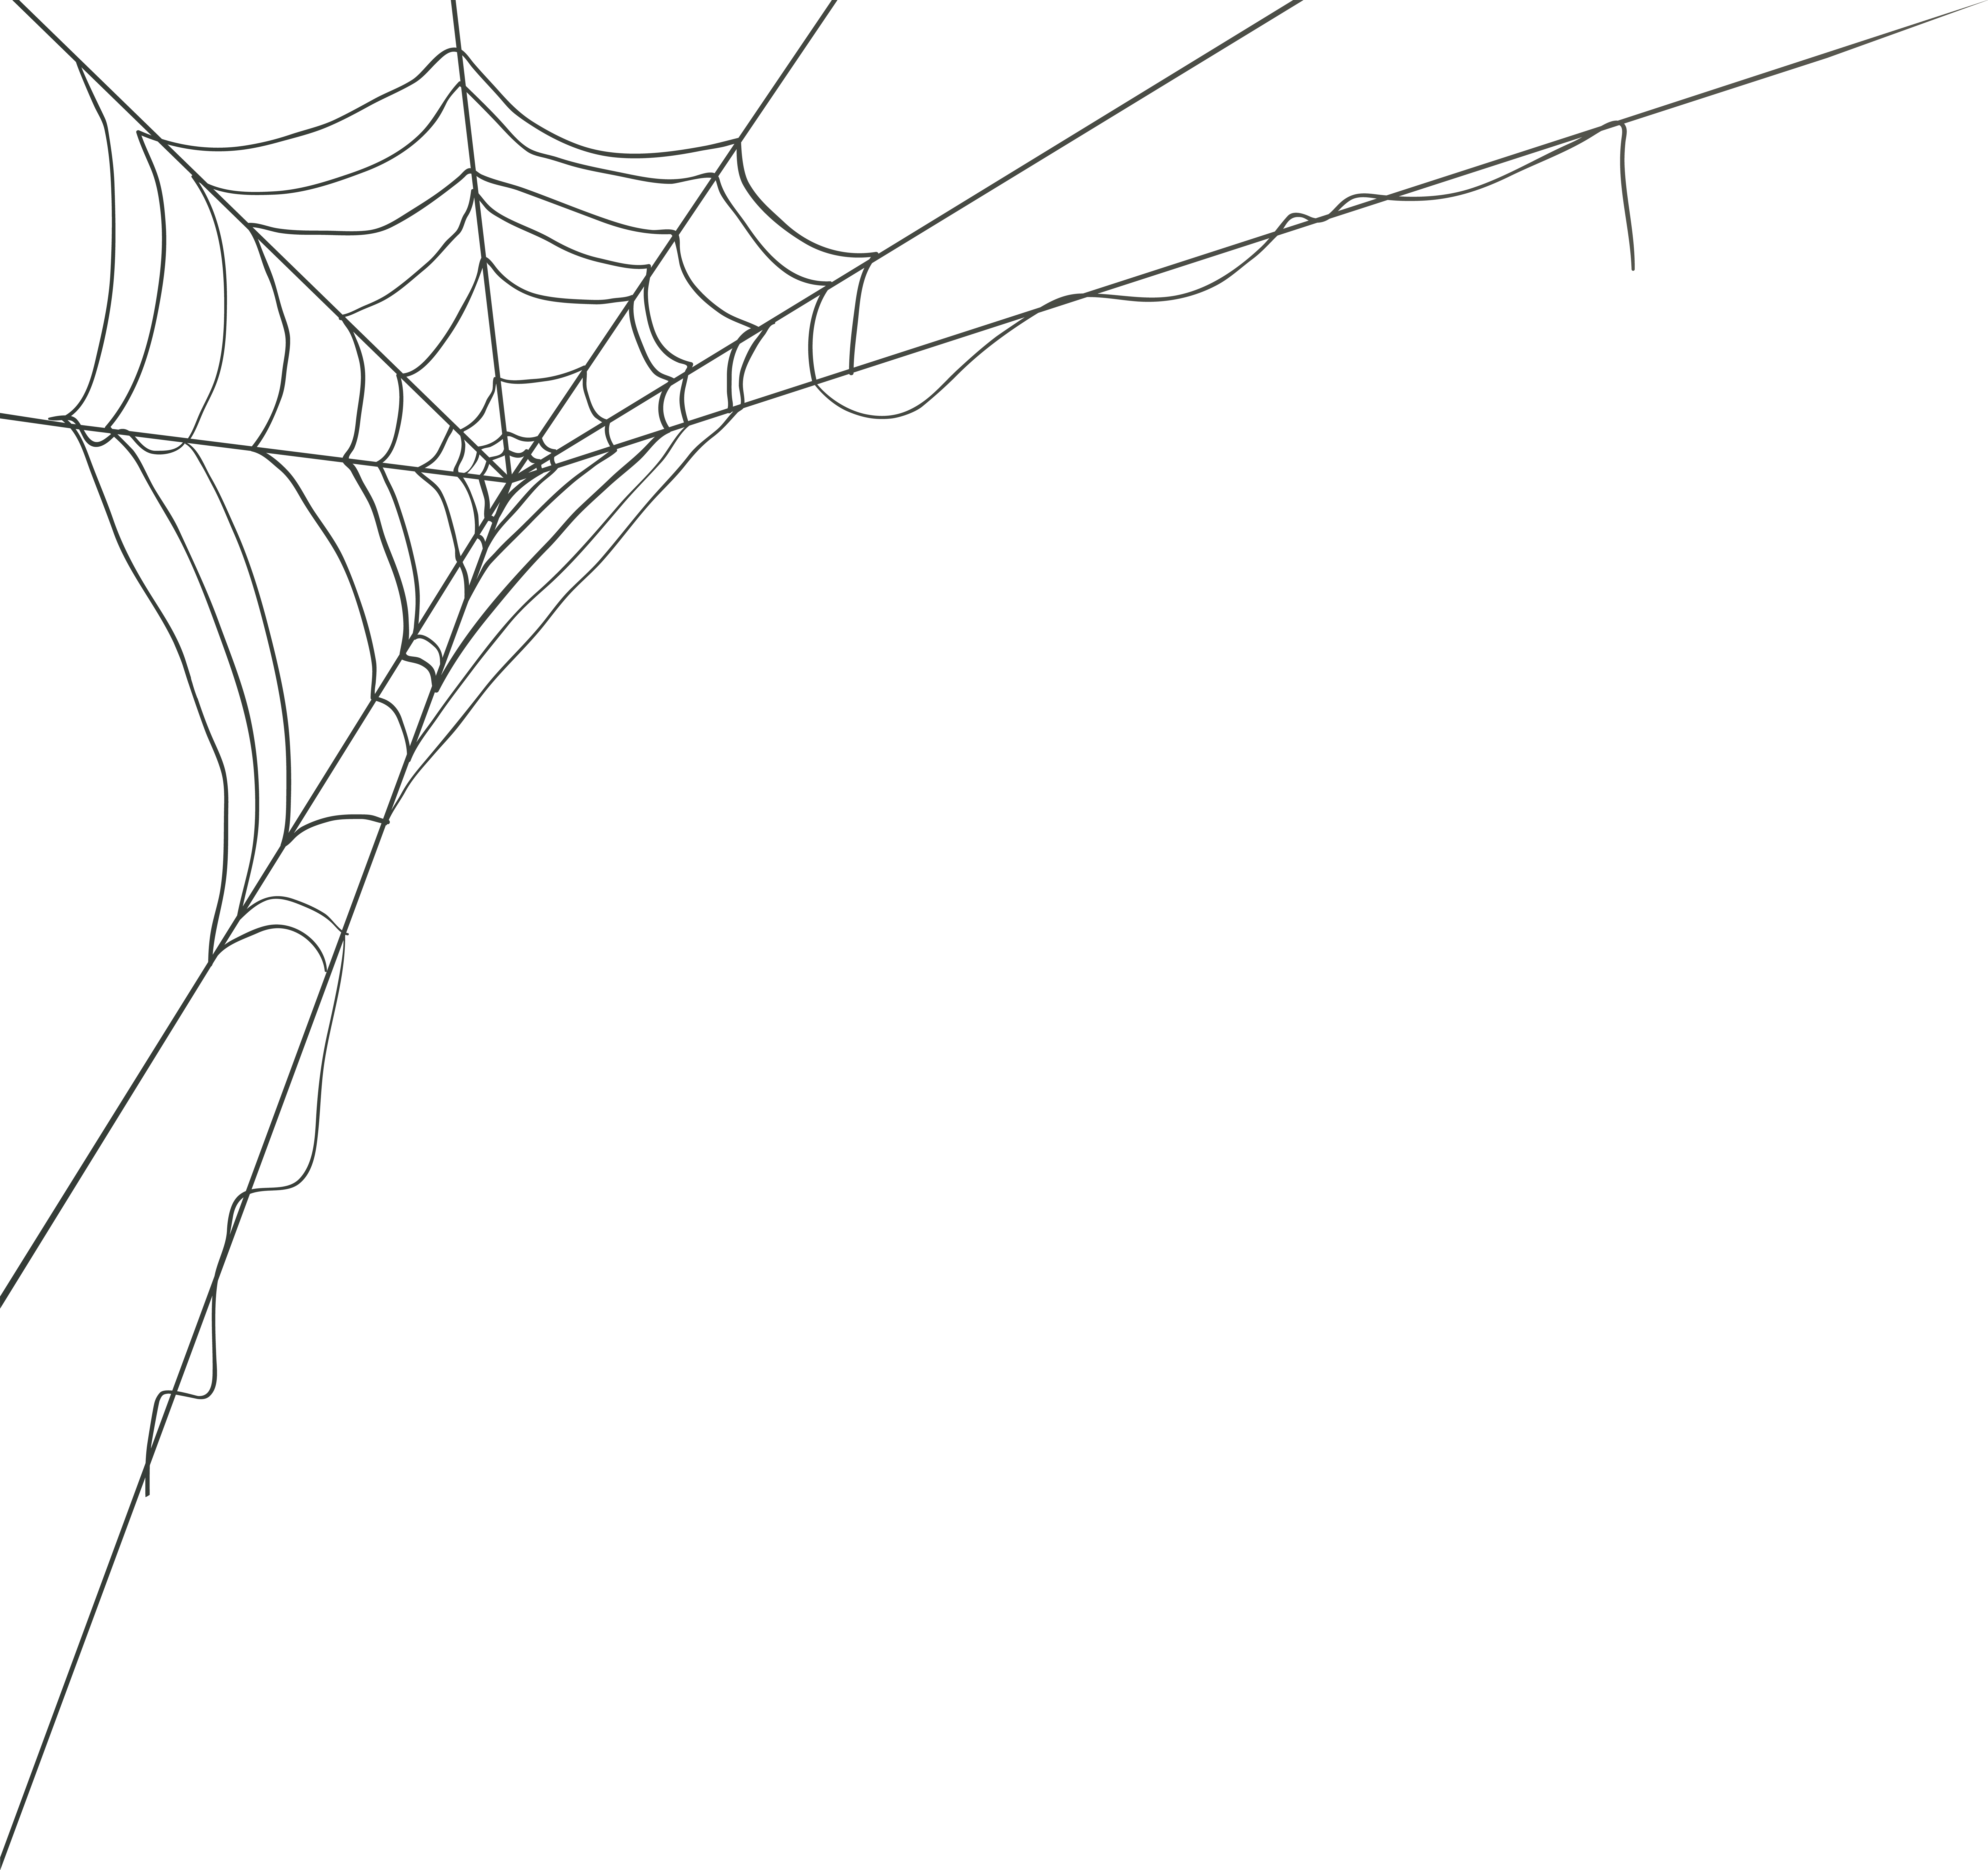 Spider Web Corner Png Clip Art Image Gallery Yopriceville High Quality Images And Transparent Png Free Clipart Spider Web Drawing Spider Art Spider Web